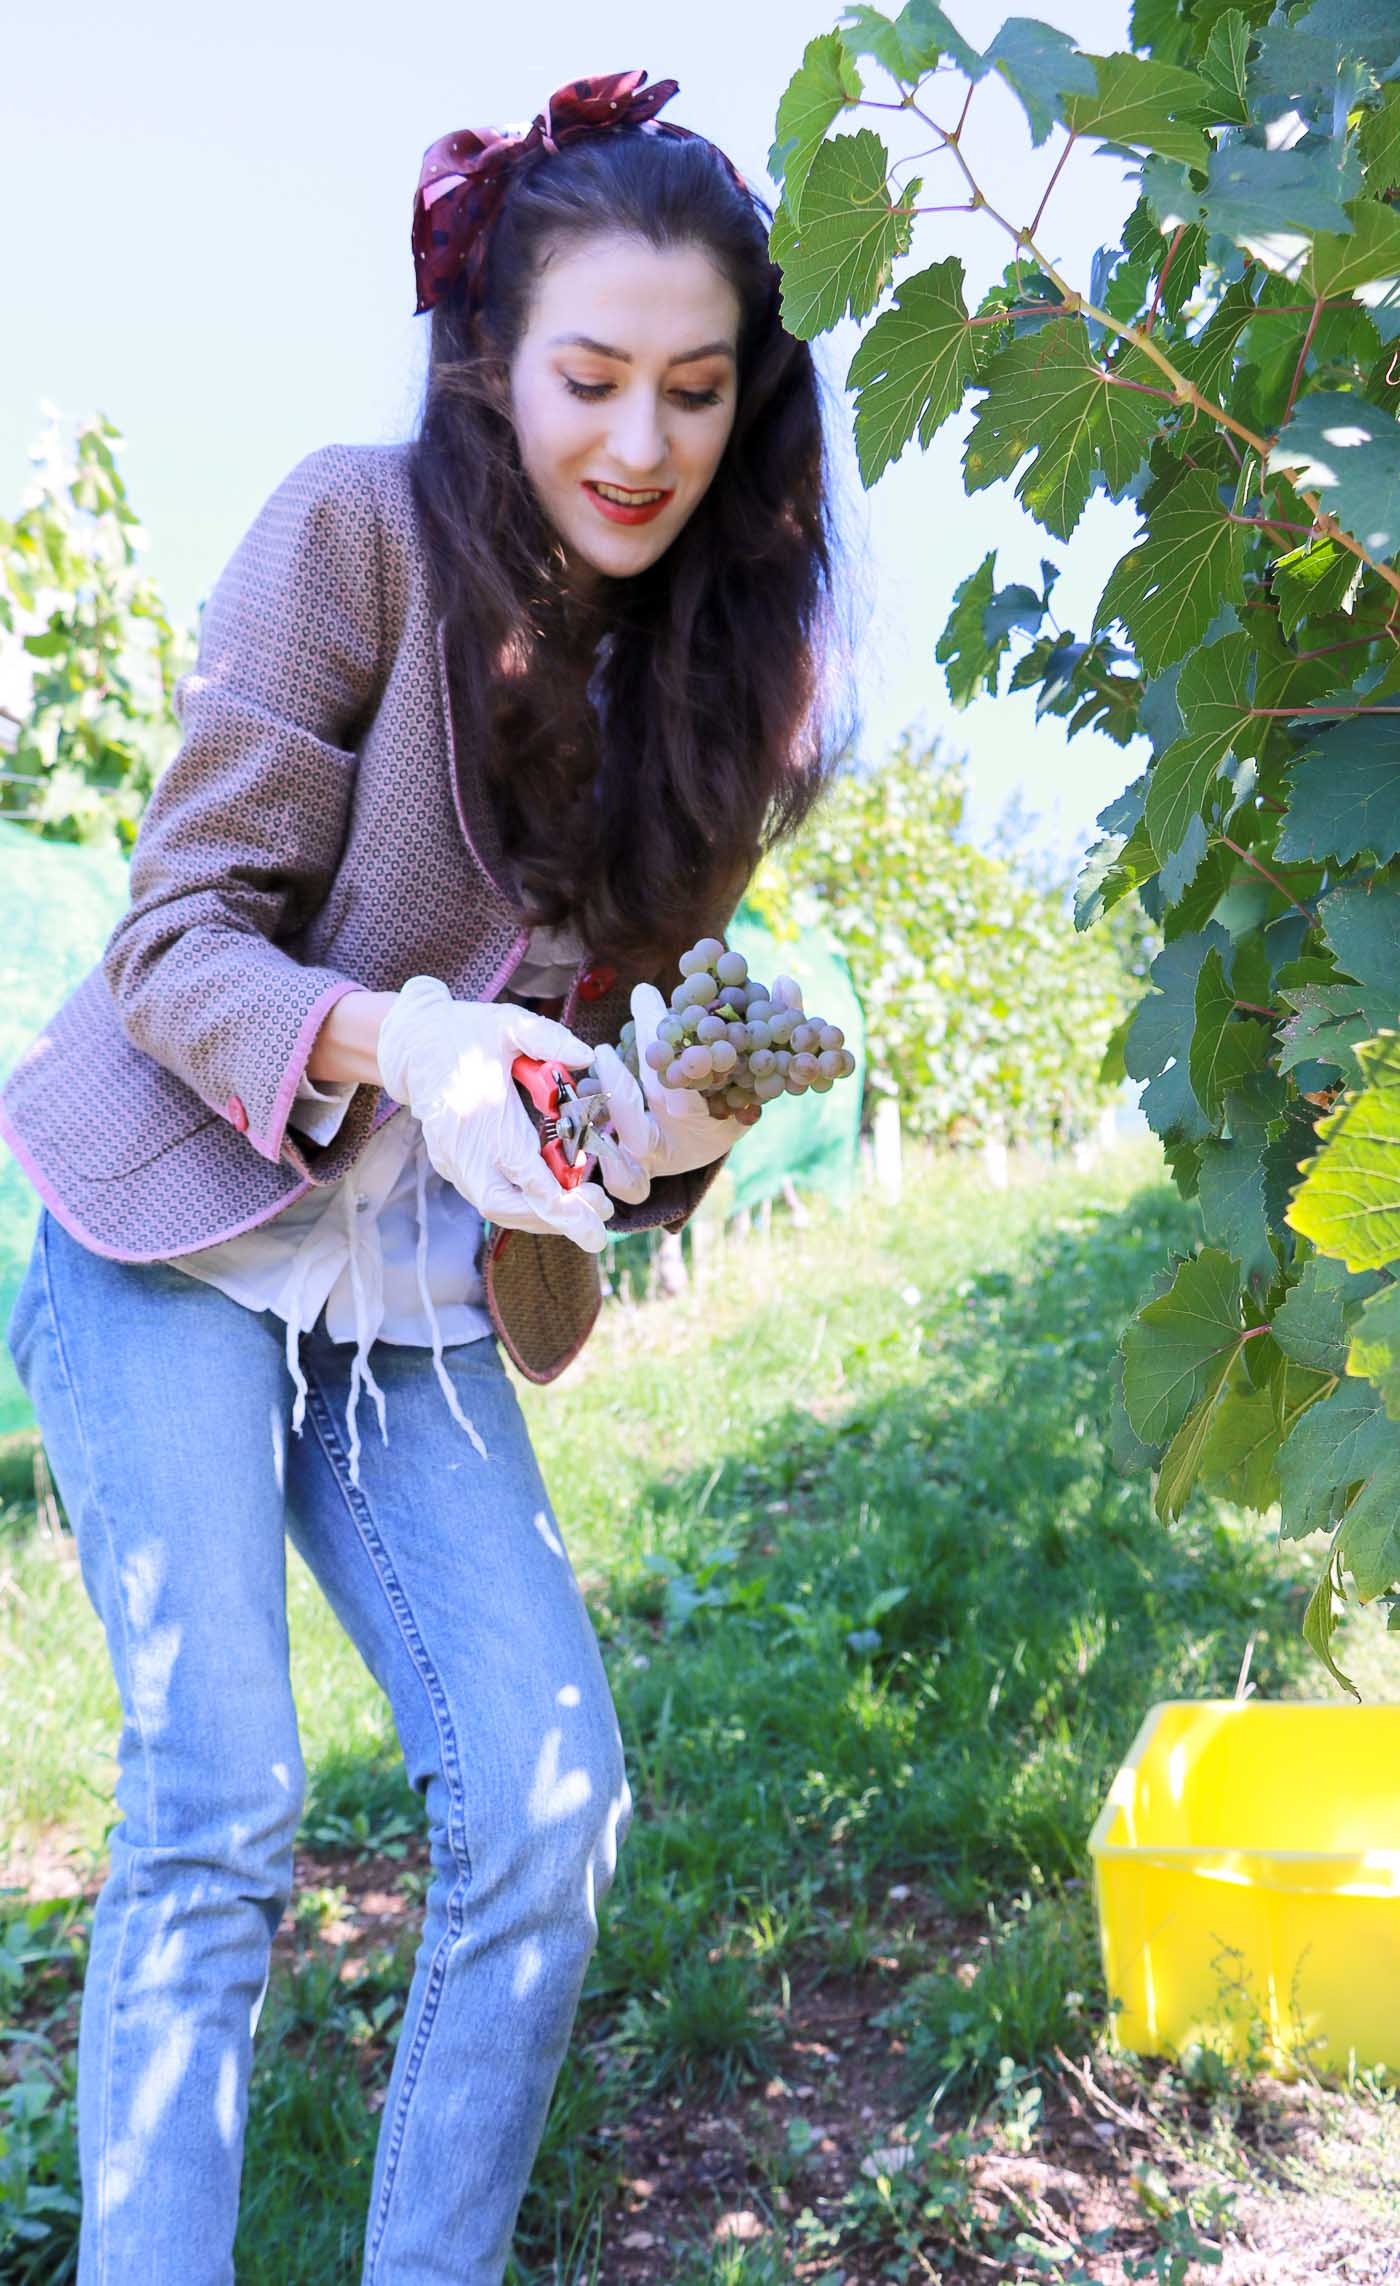 Fashion Blogger Veronika Lipar of Brunette from Wall Street picking grapes at the grape harvest dressed in retro printed tweed blazer, blue mom jeans, bobby sneaker, head scarf, gloves